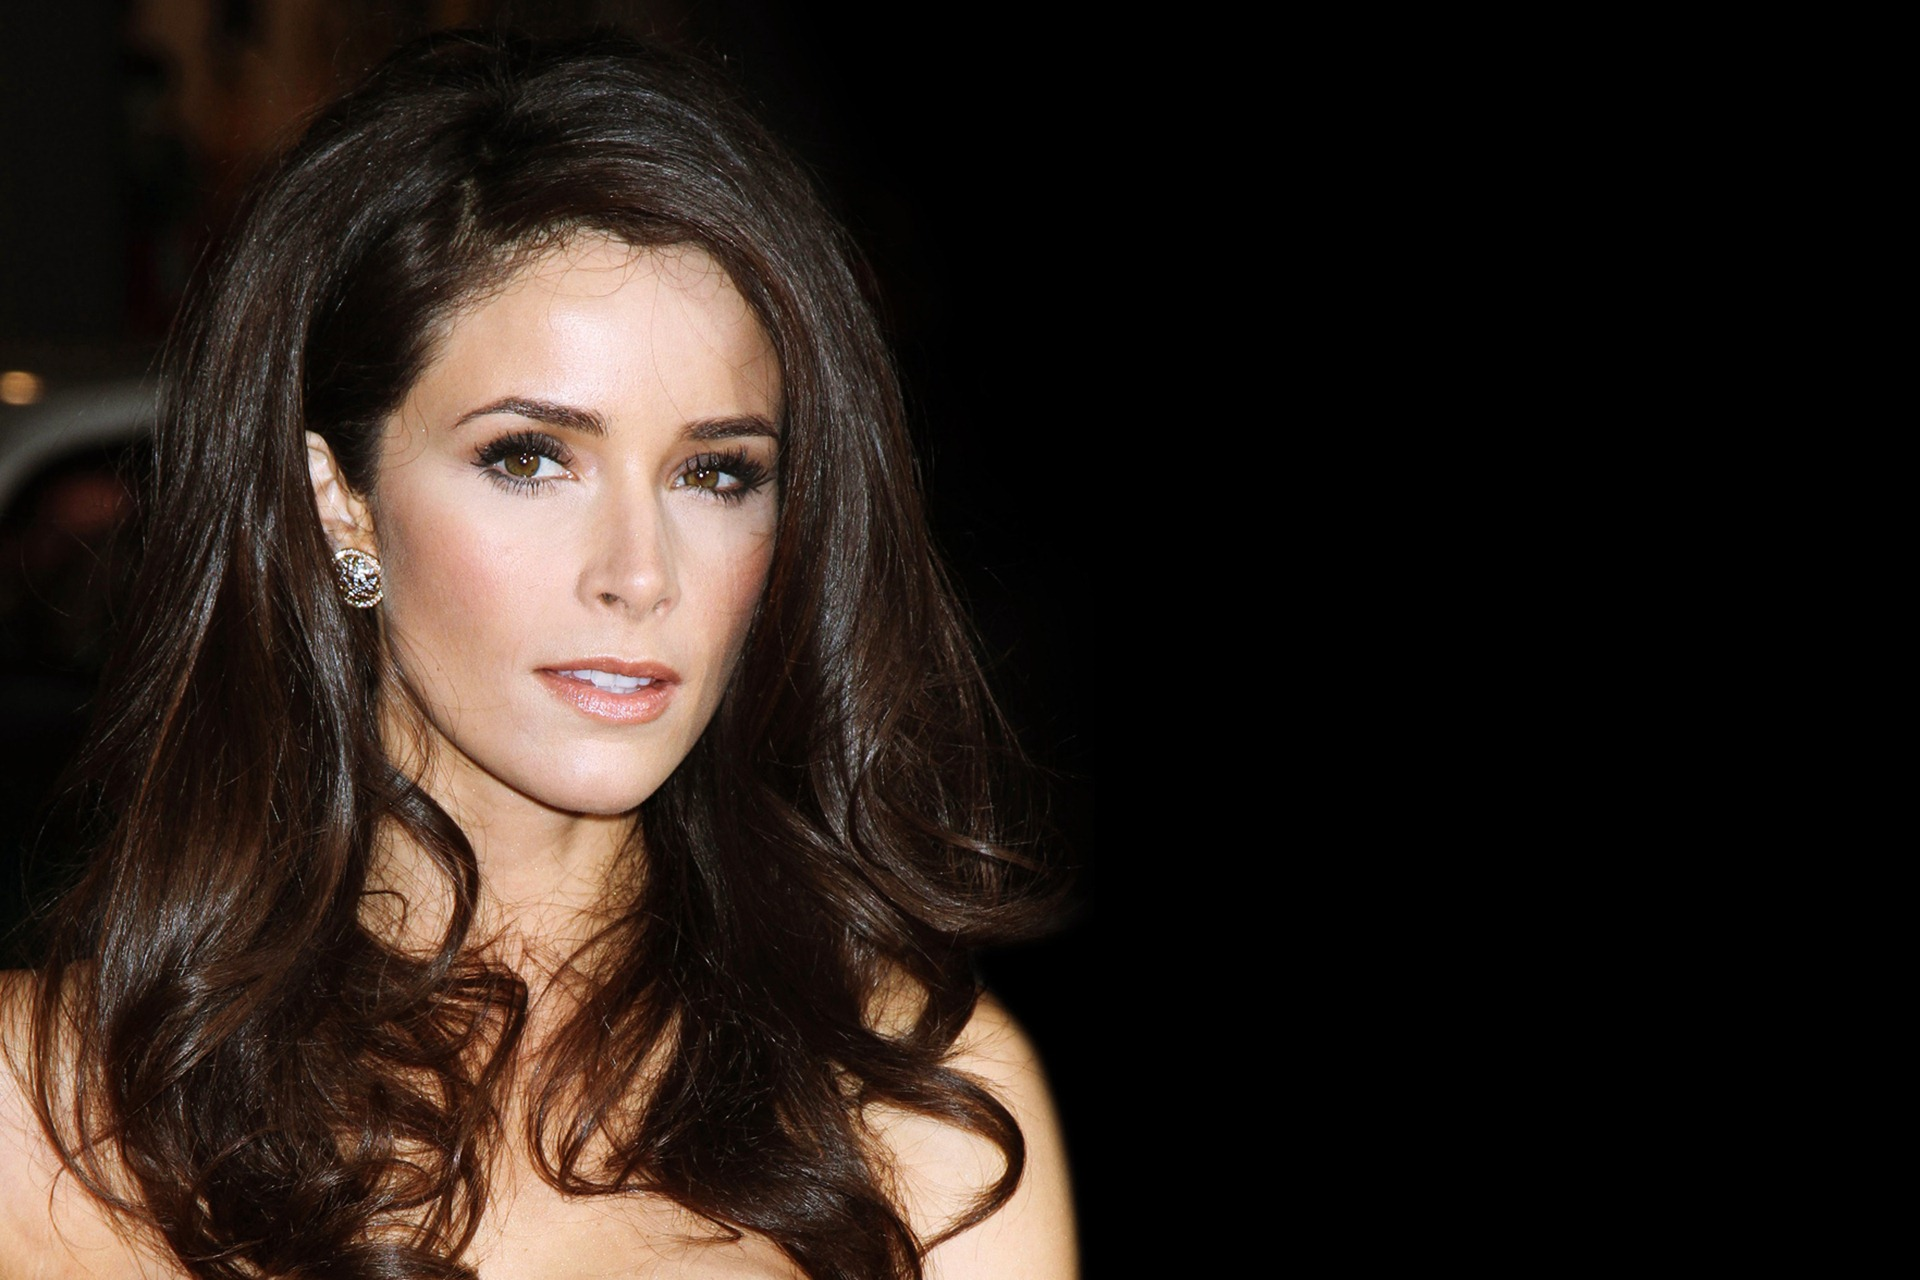 1920x1280 - Abigail Spencer Wallpapers 14